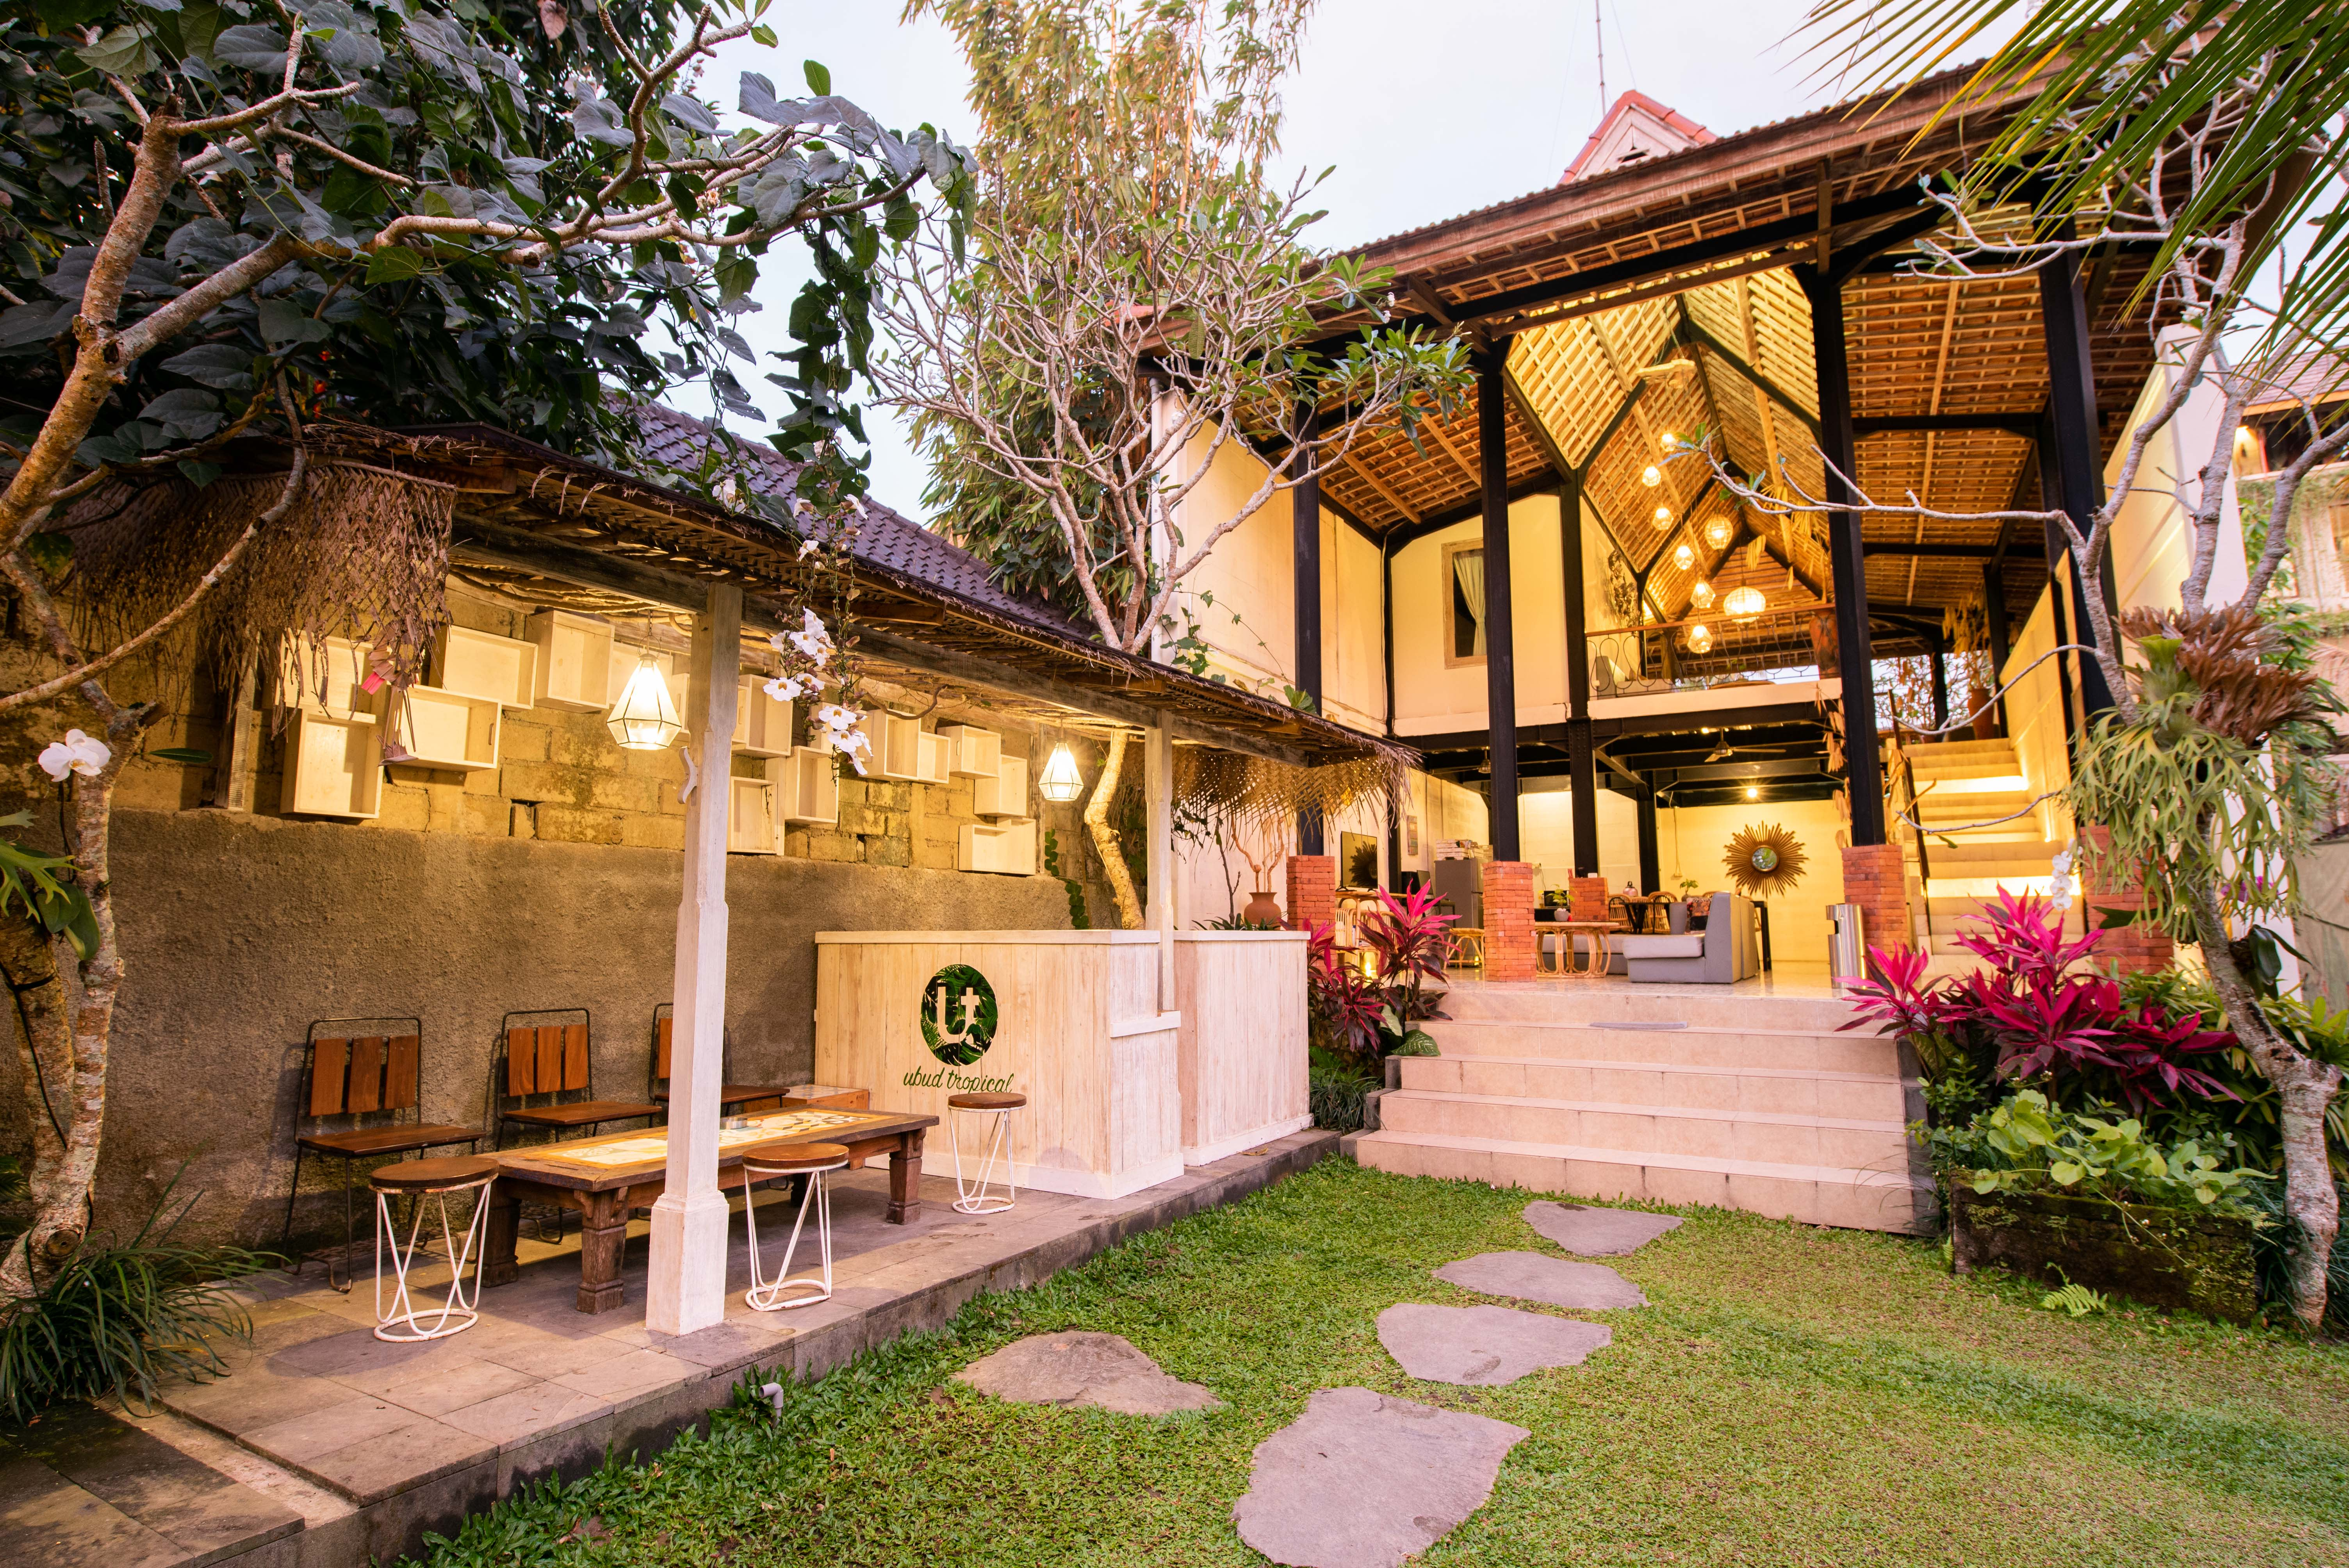 HOSTEL - Ubud Tropical